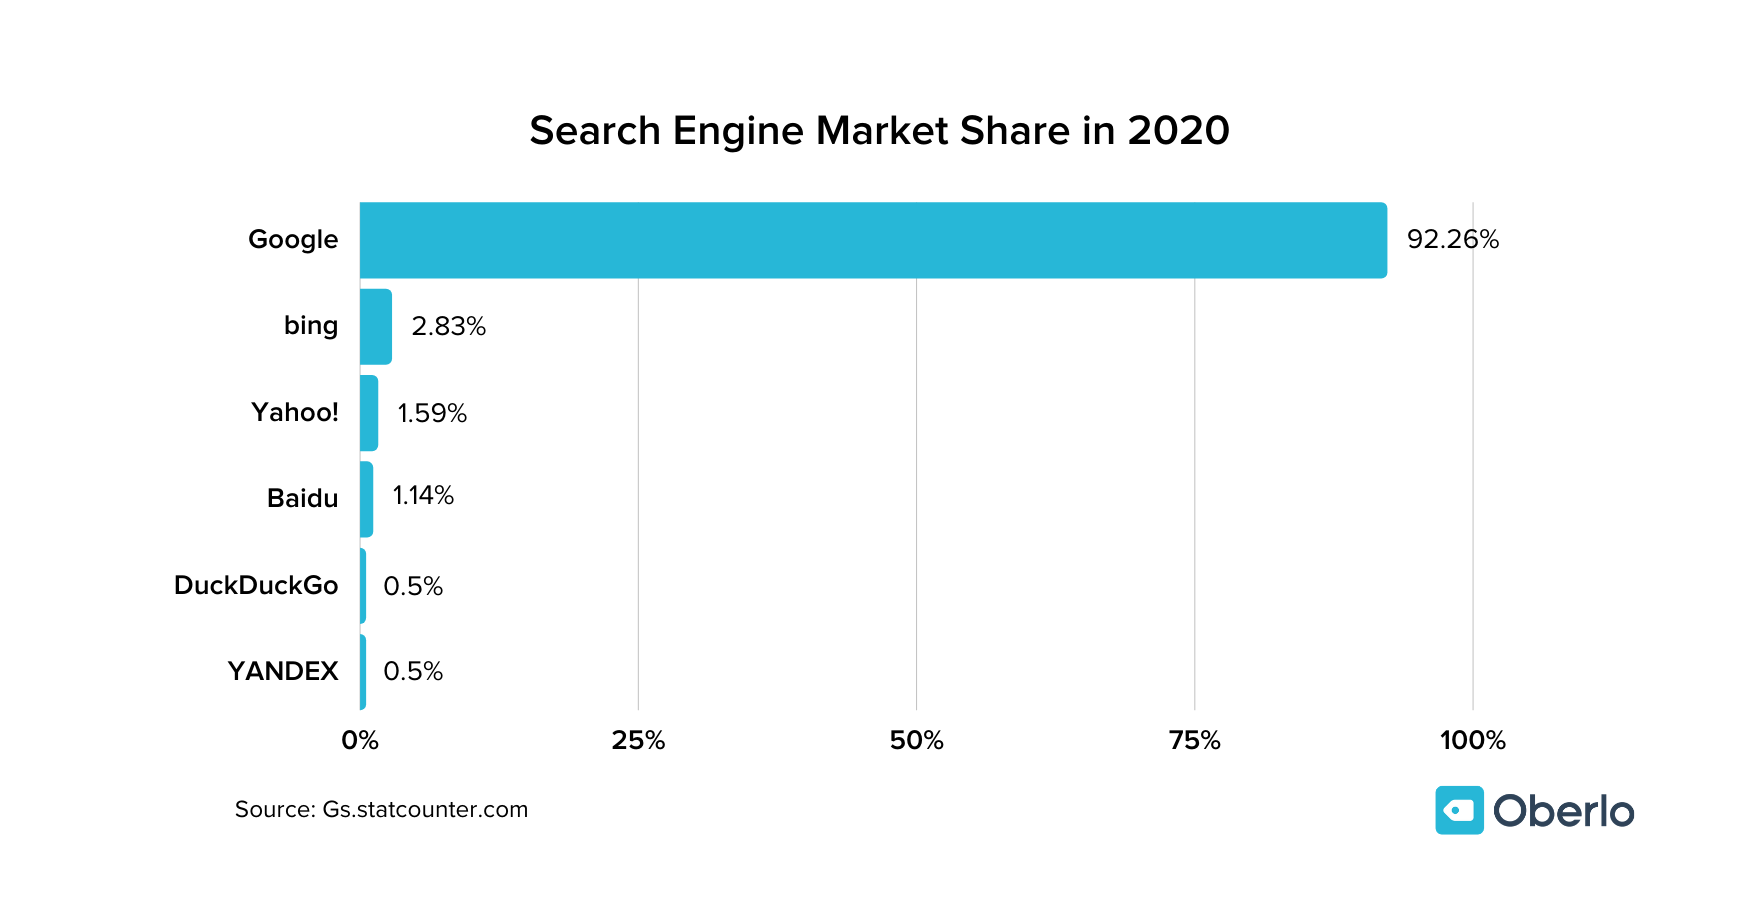 Search-Engine-Market-Share-in-2020-1